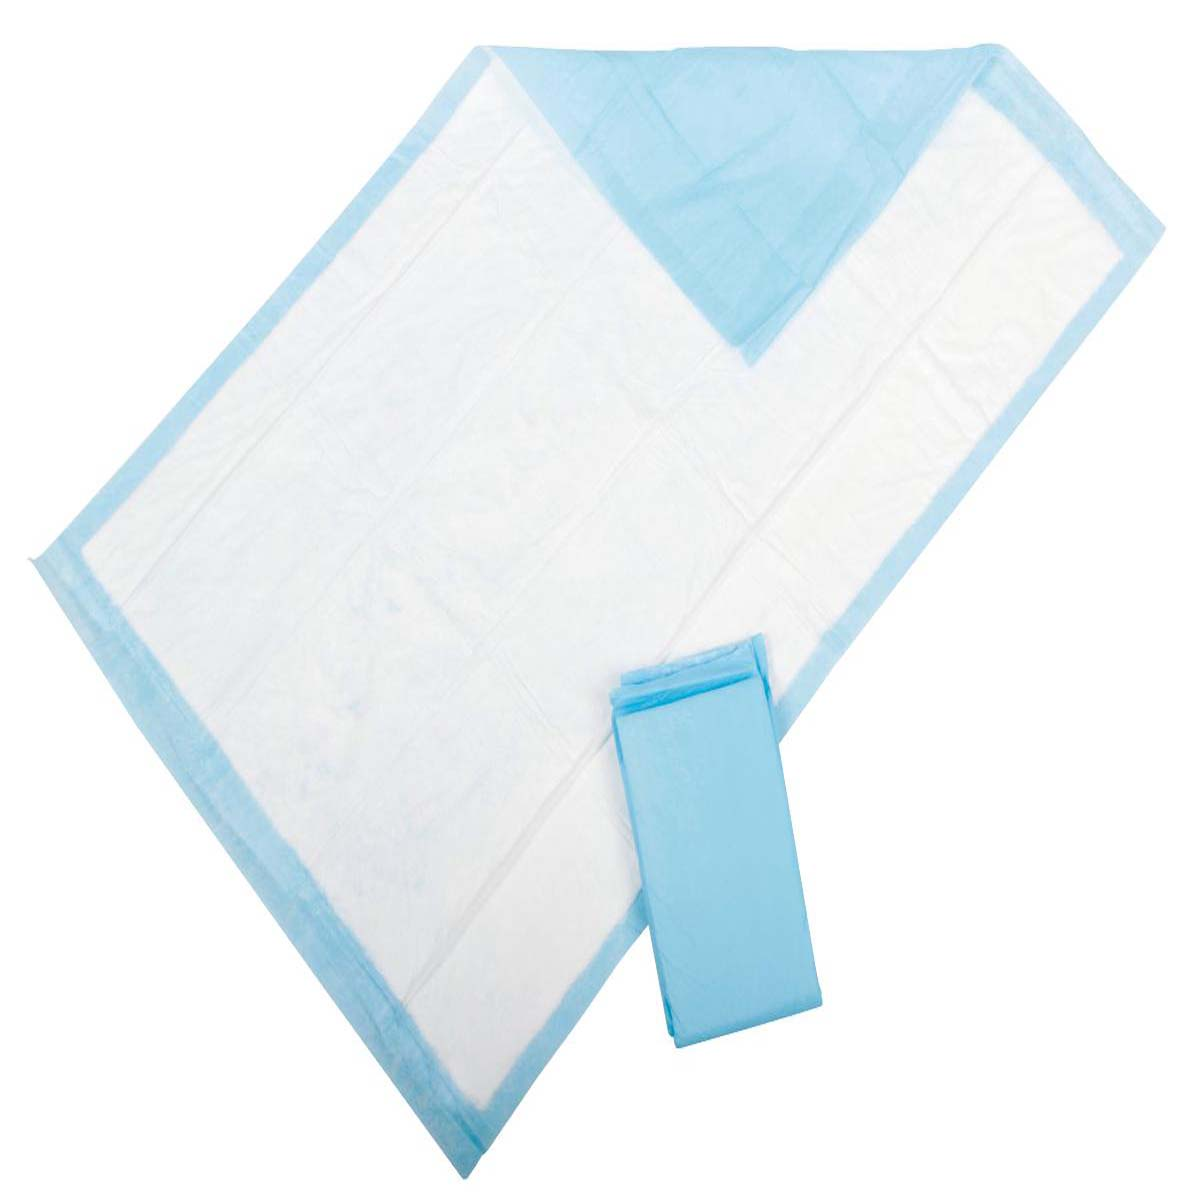 Disposable Underpads Fluff-Filled Disposable Underpads